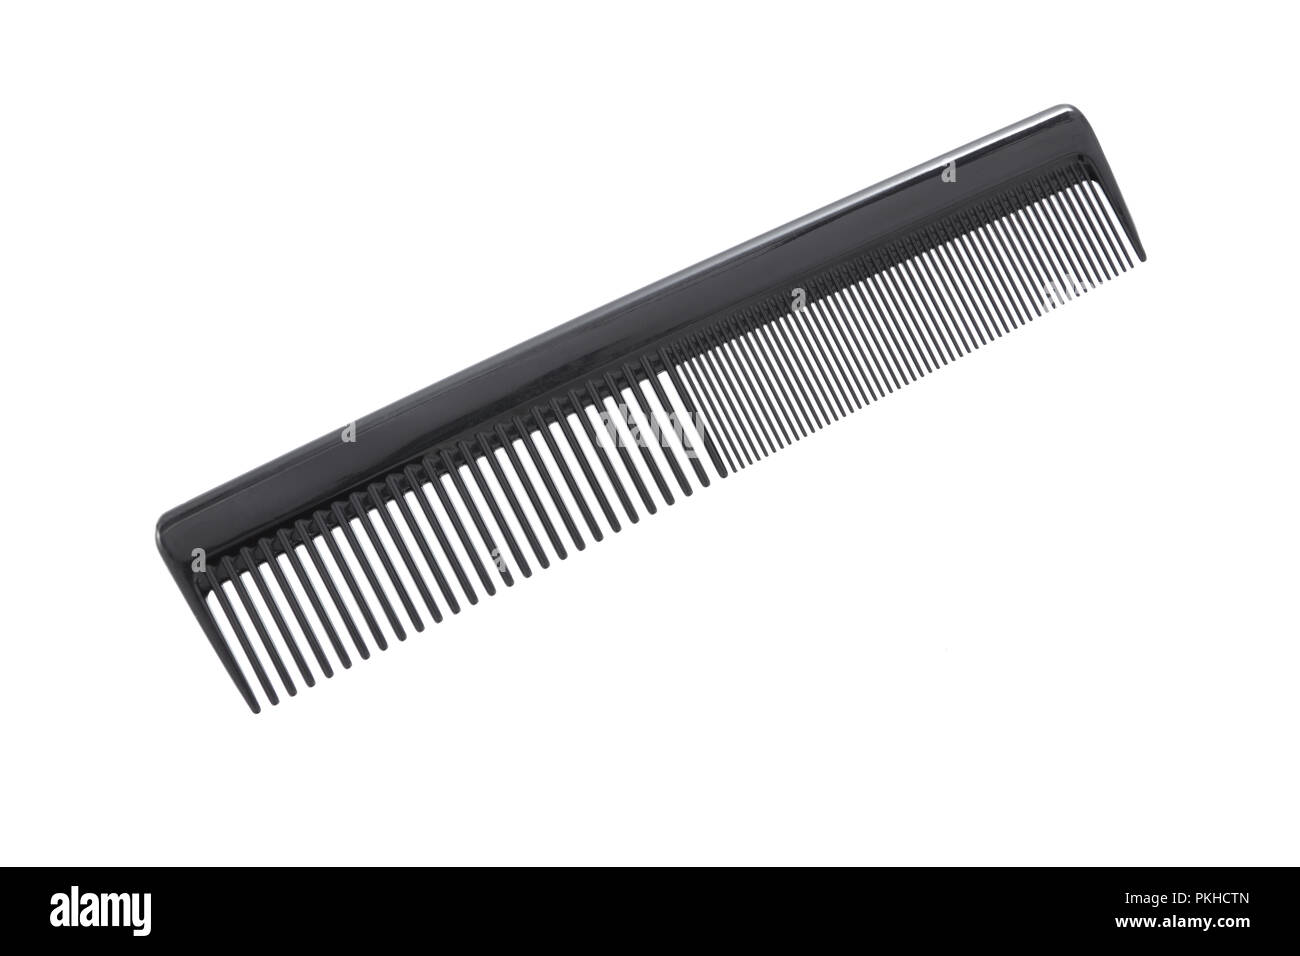 Black hair comb isolated on a white background - Stock Image